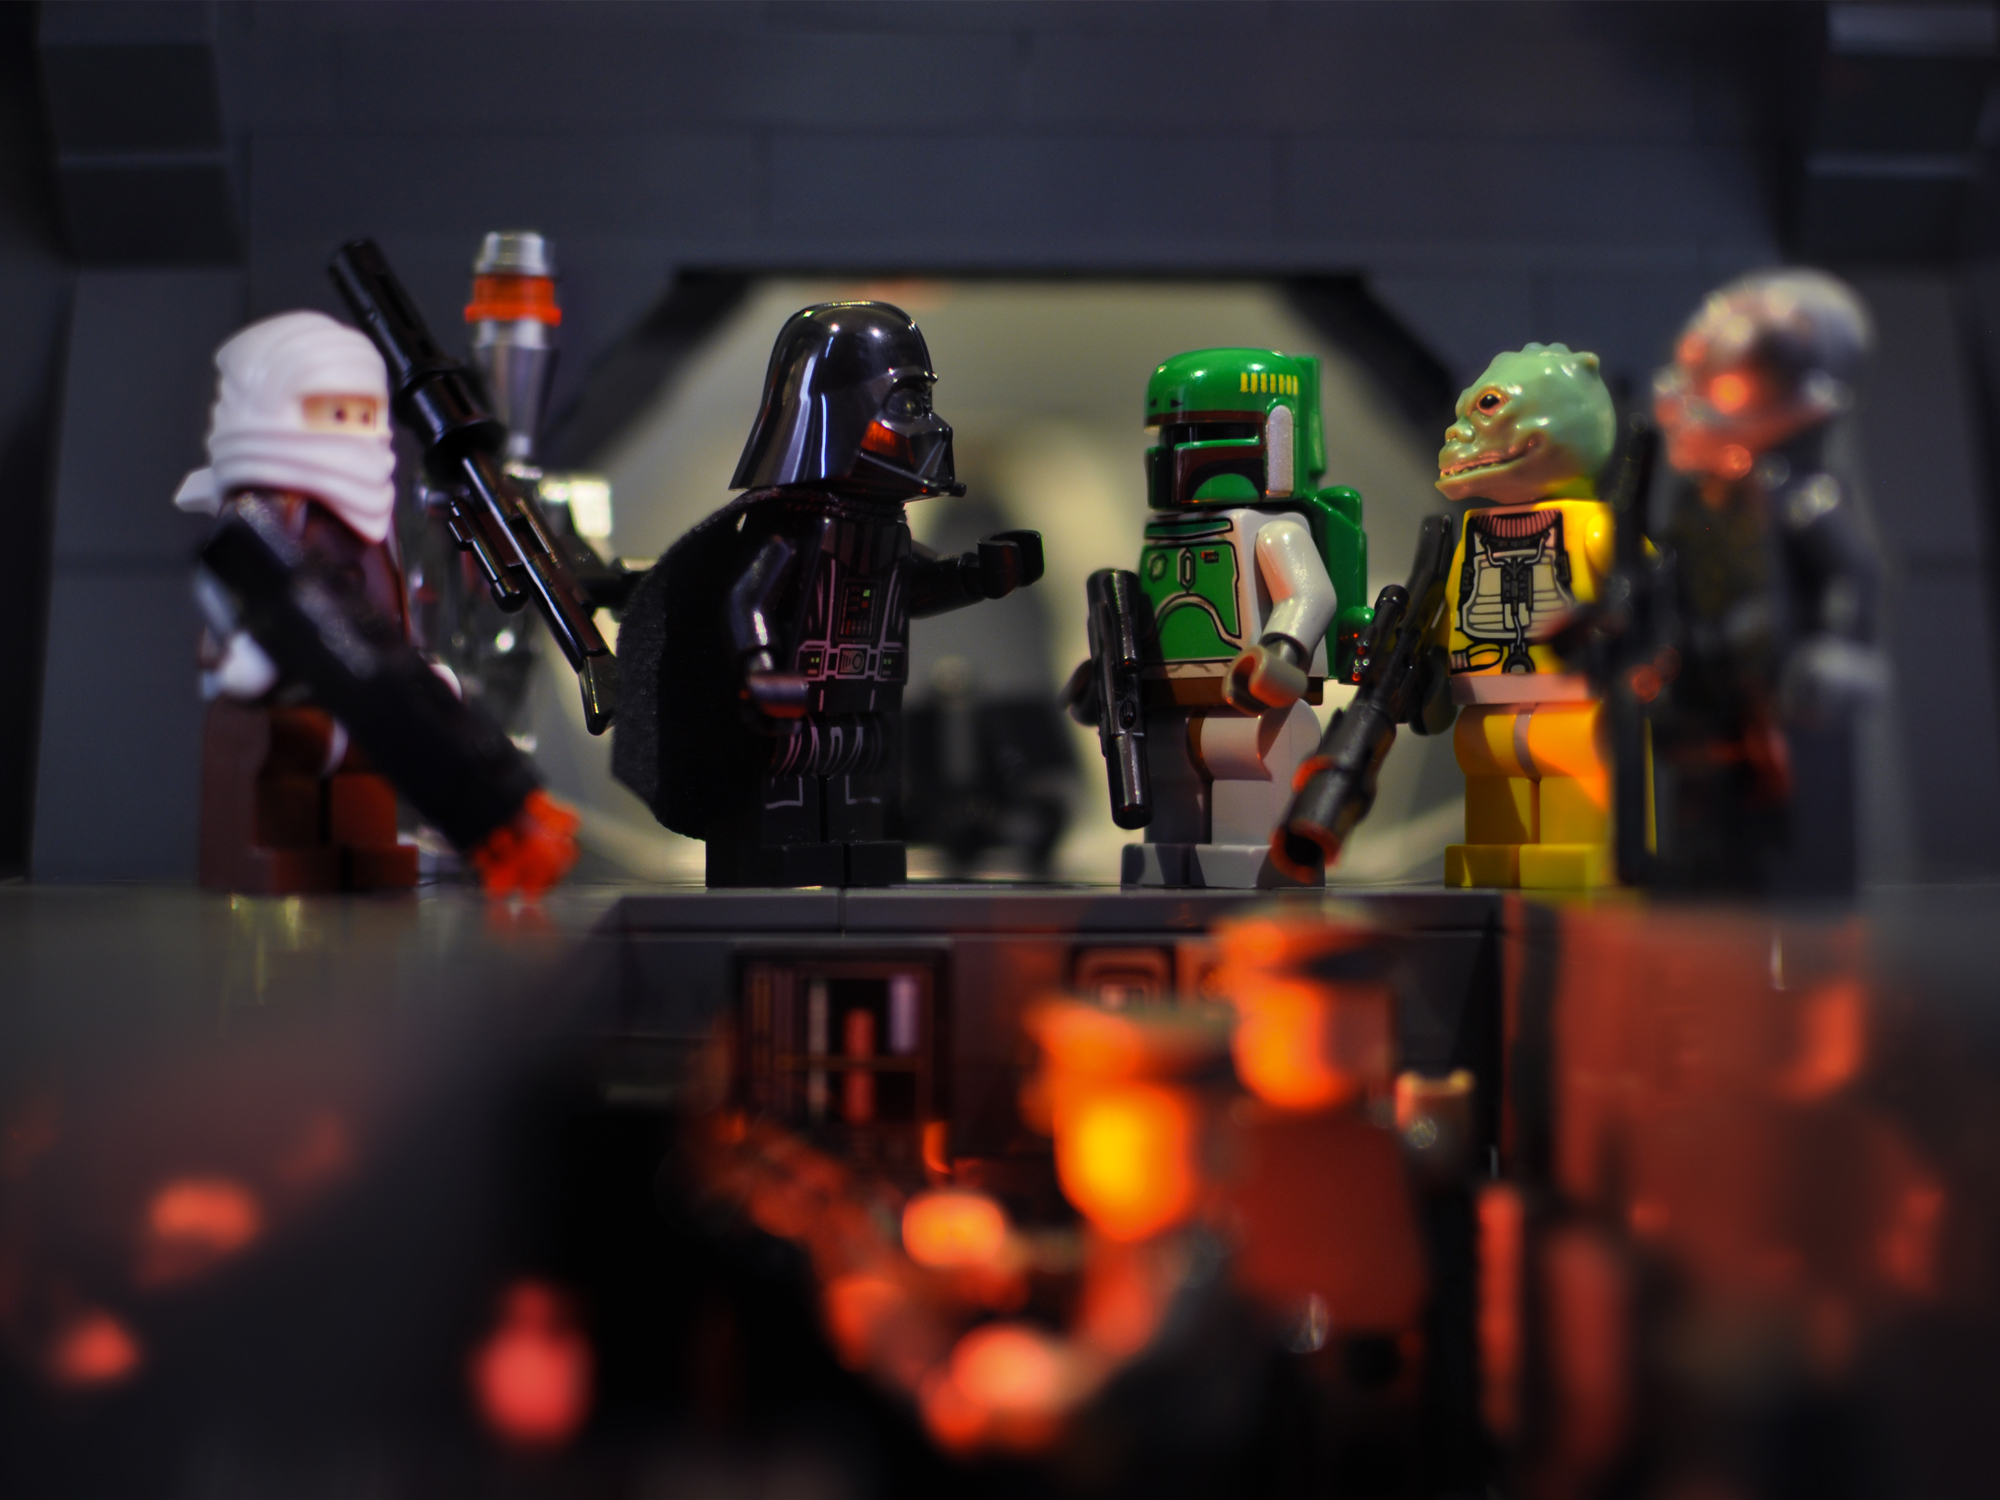 A look at the Lego Star Wars minifigures from 2006.